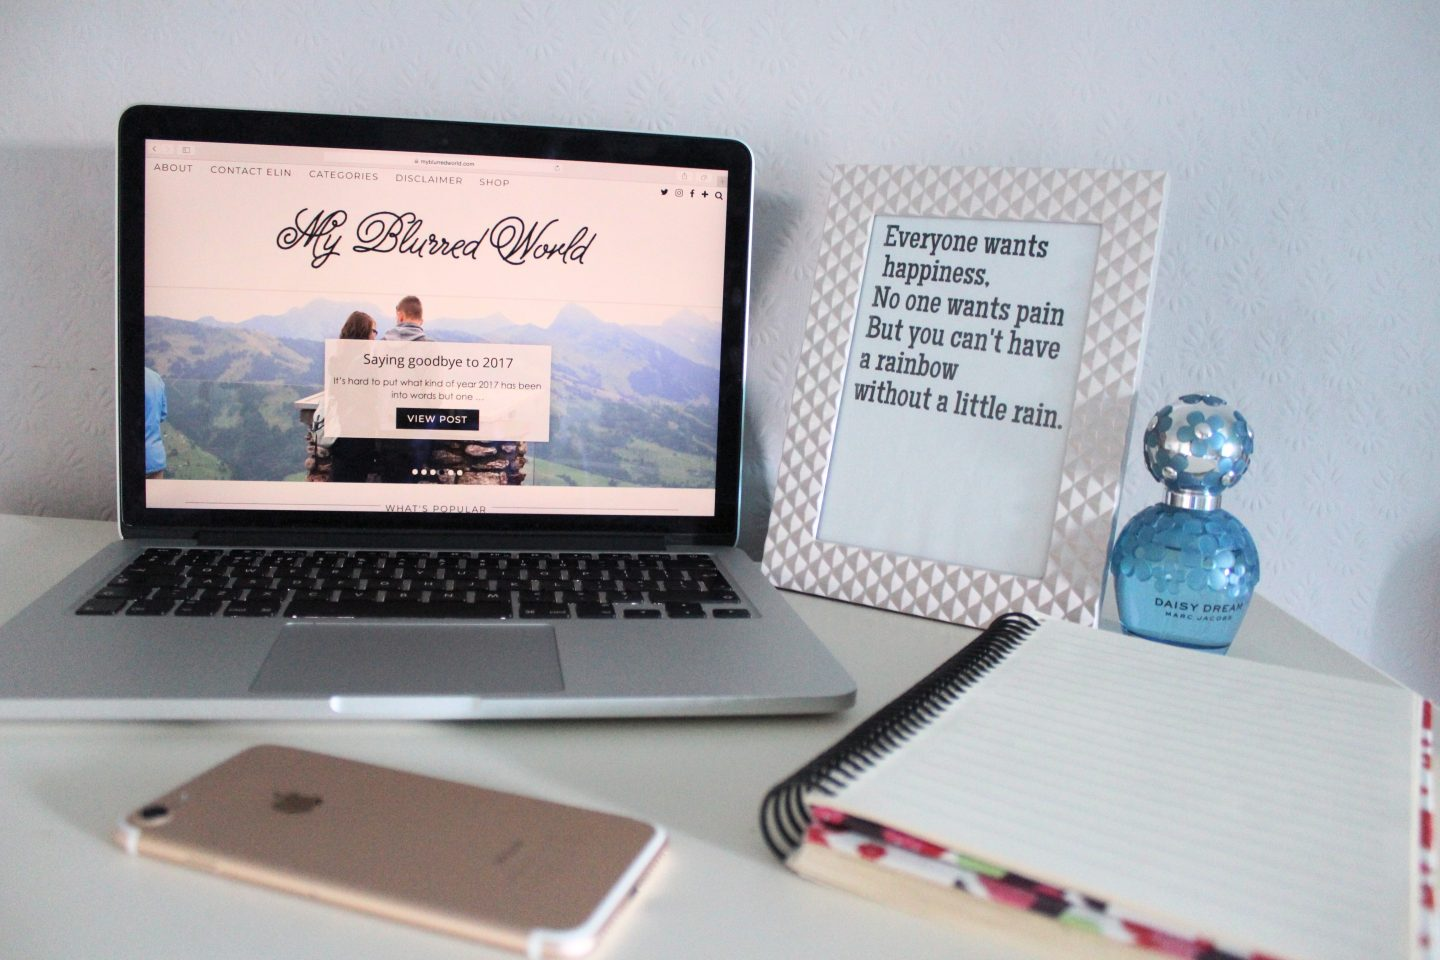 A photo of my blog on a macbook, there is a quote in a frame next to it that says everyone wants happiness, no one wants pain but you can't have a rainbow without a little rain